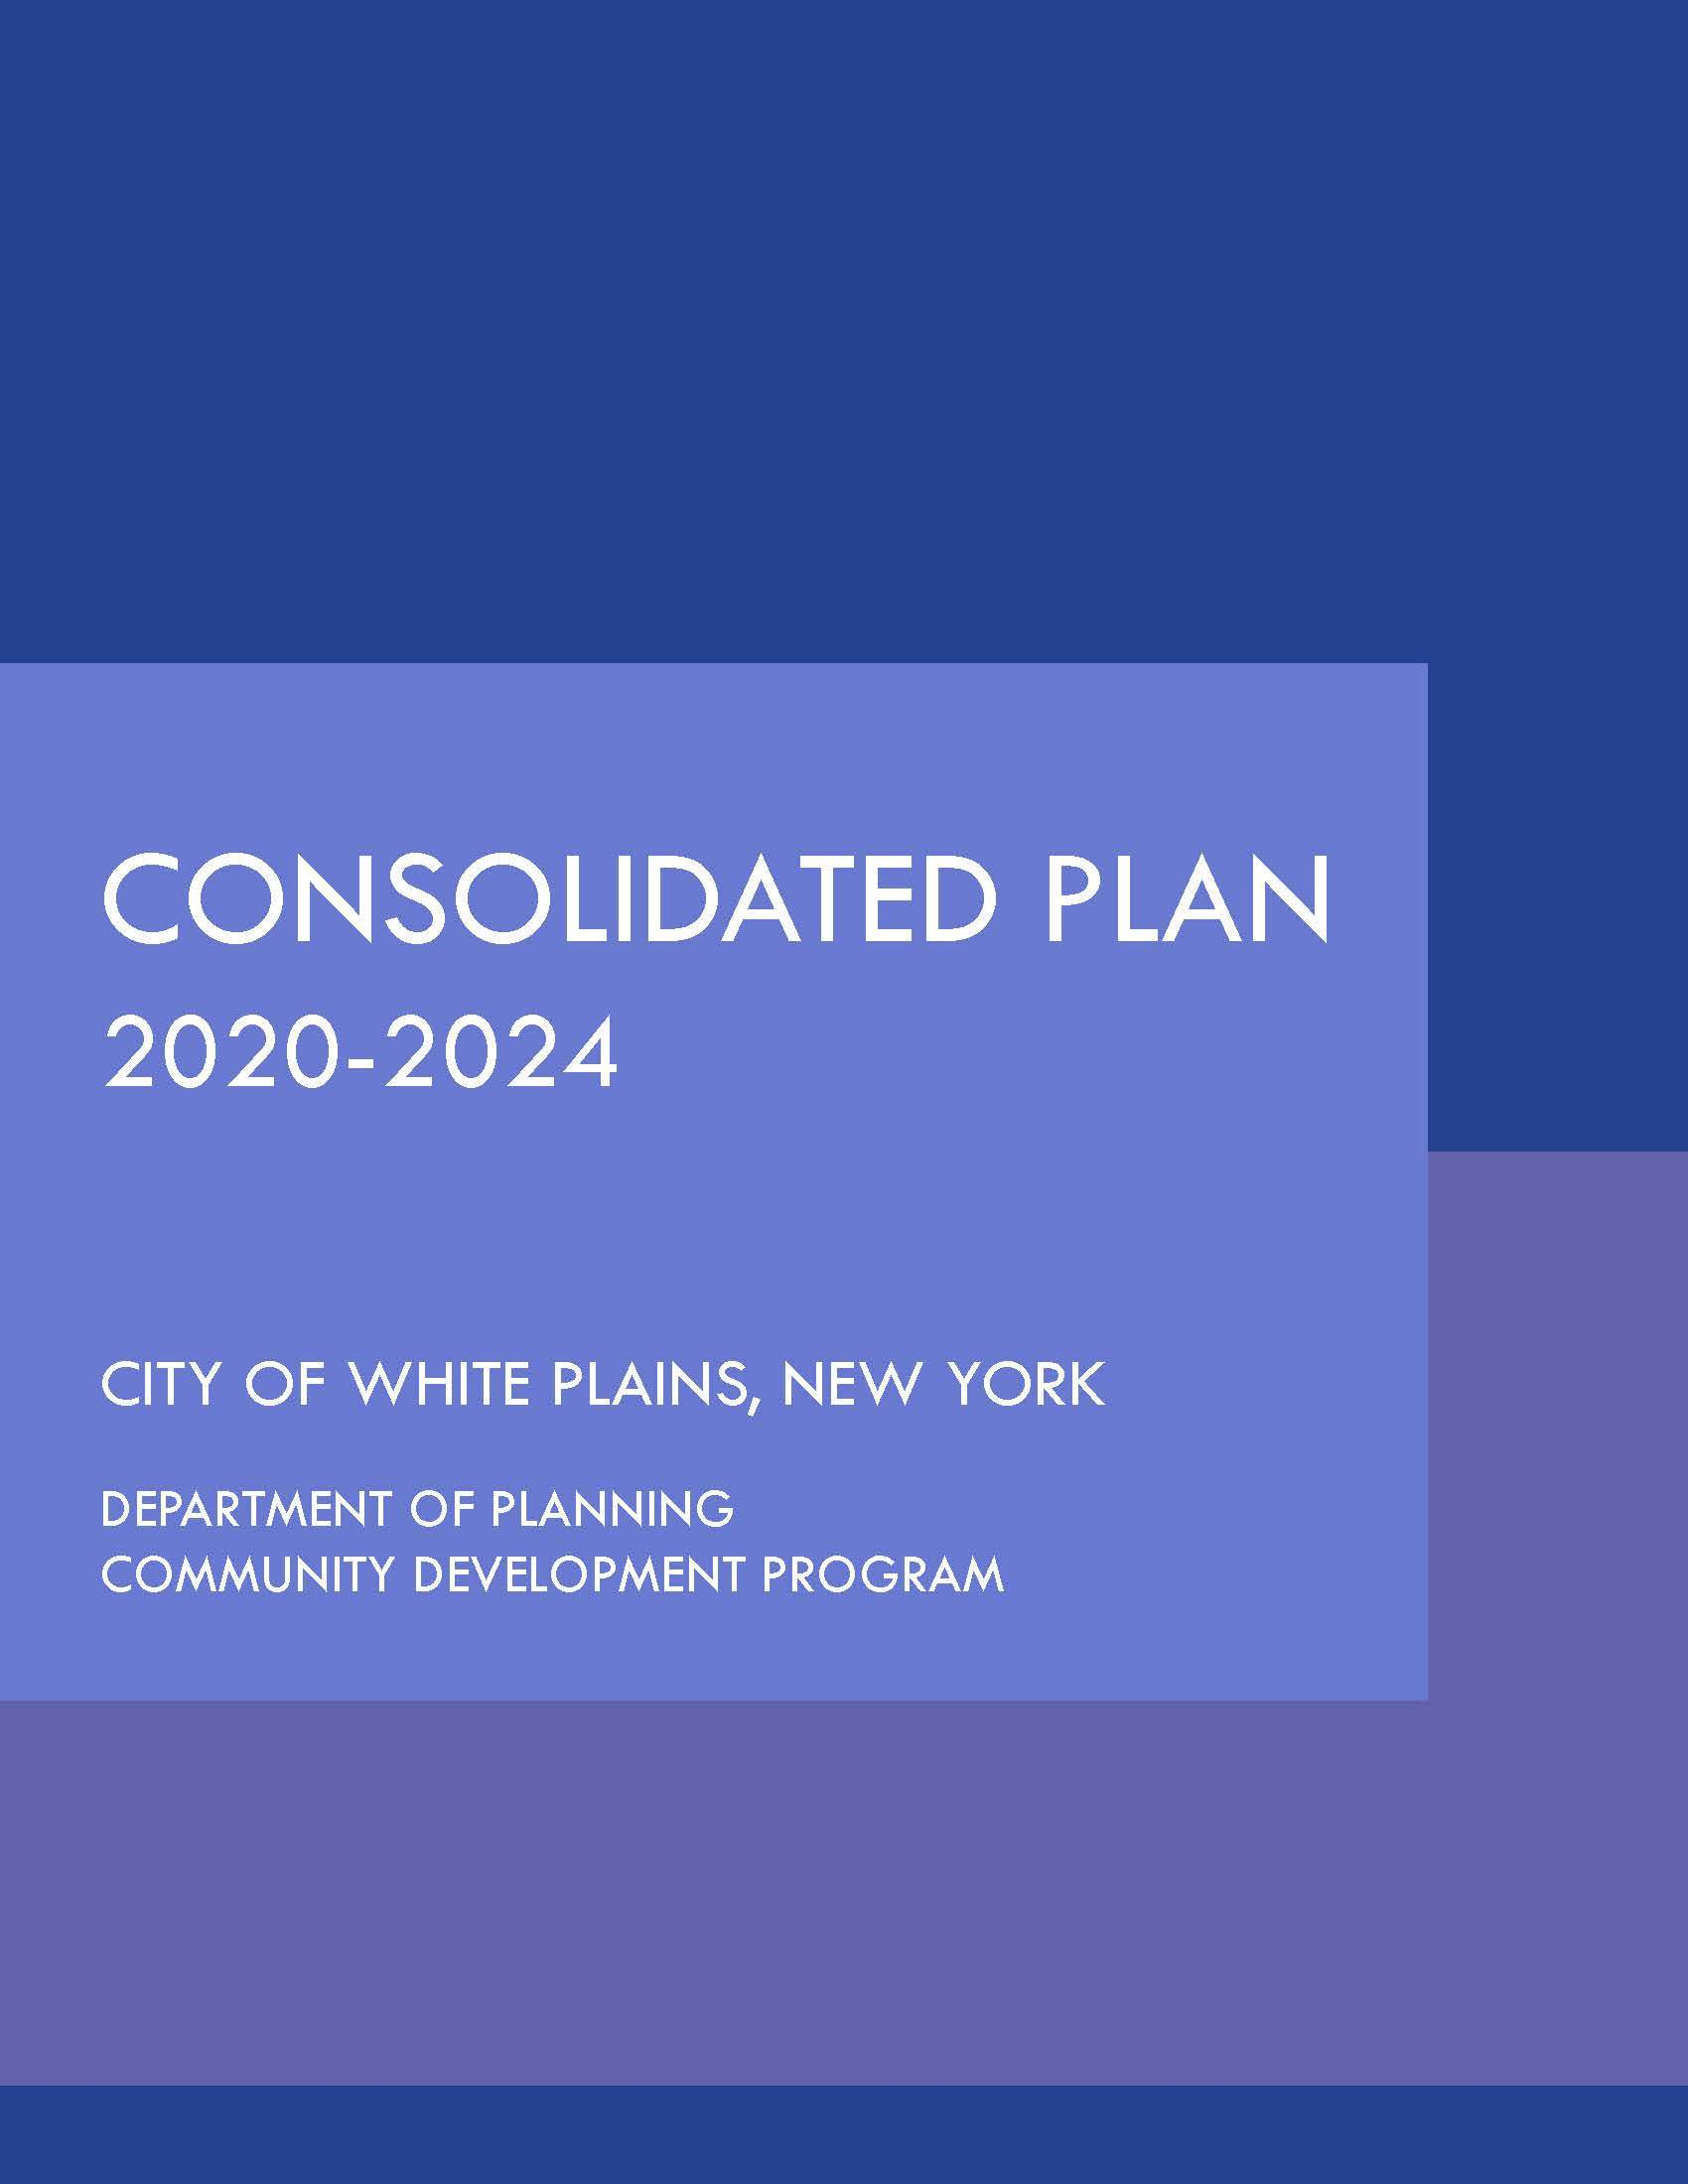 20-24 Consolidated Plan Cover Page